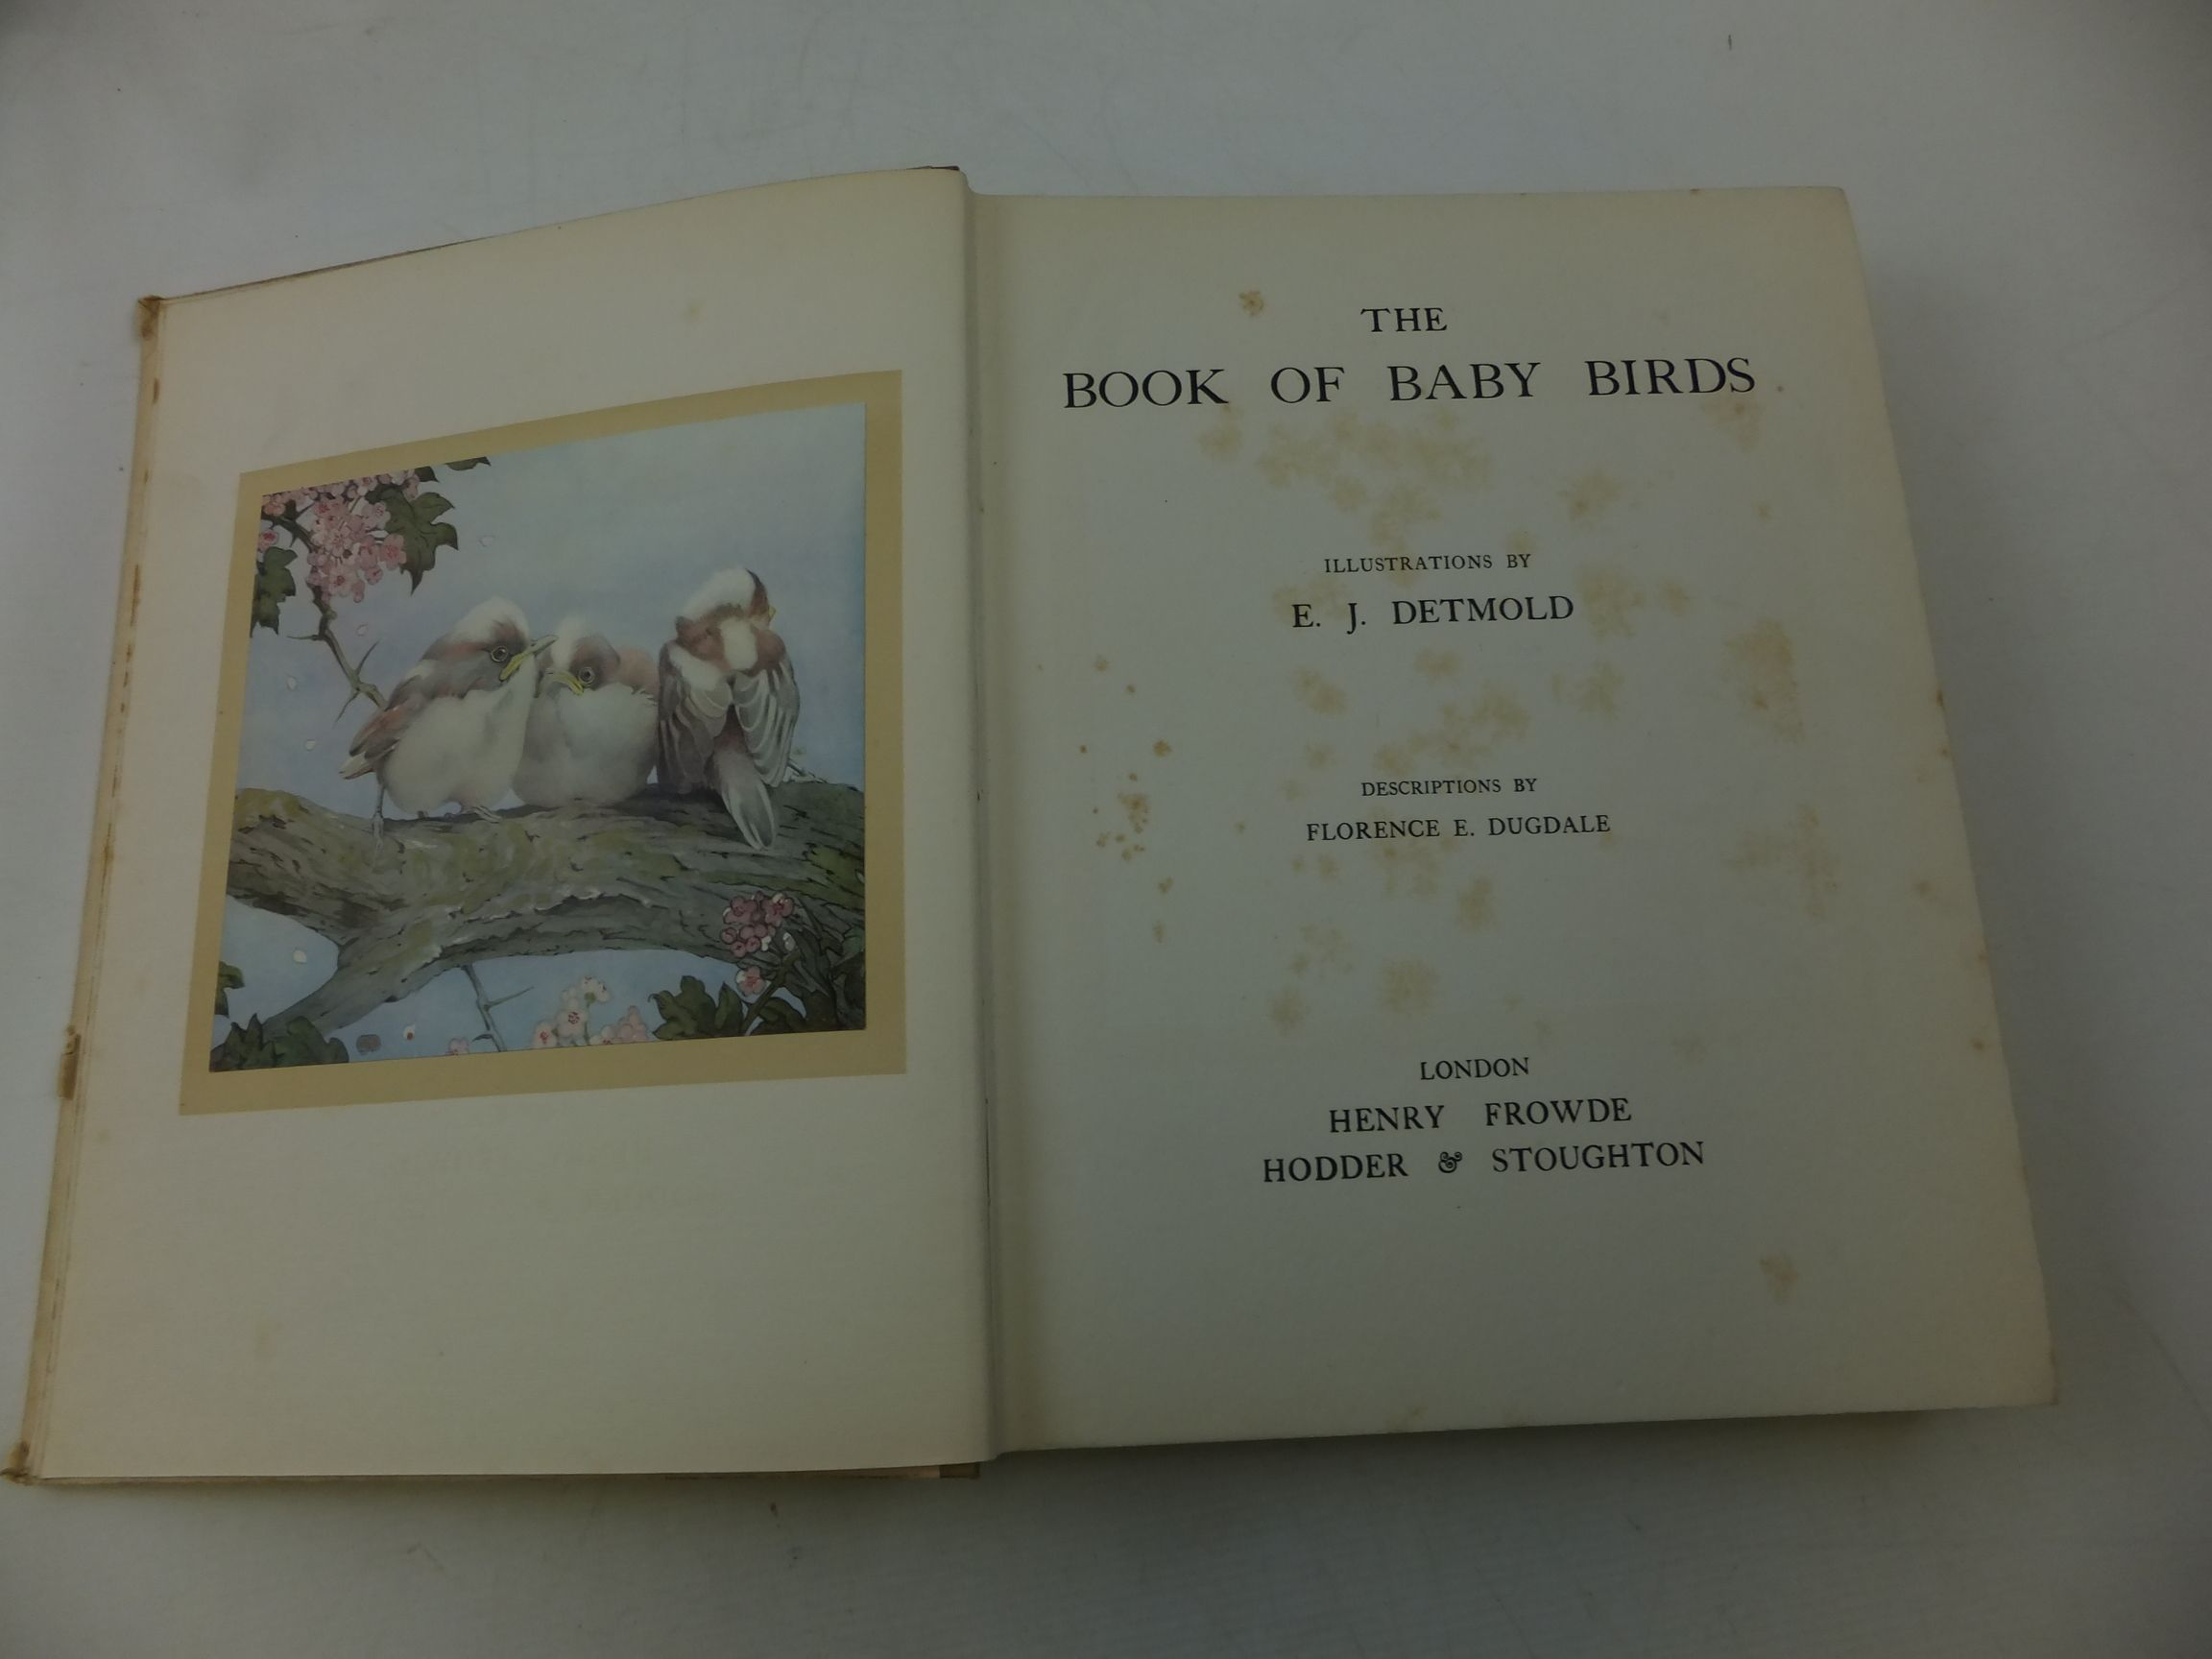 Photo of THE BOOK OF BABY BIRDS written by Dugdale, Florence E. illustrated by Detmold, Edward J. published by Henry Frowde, Hodder & Stoughton (STOCK CODE: 2114160)  for sale by Stella & Rose's Books